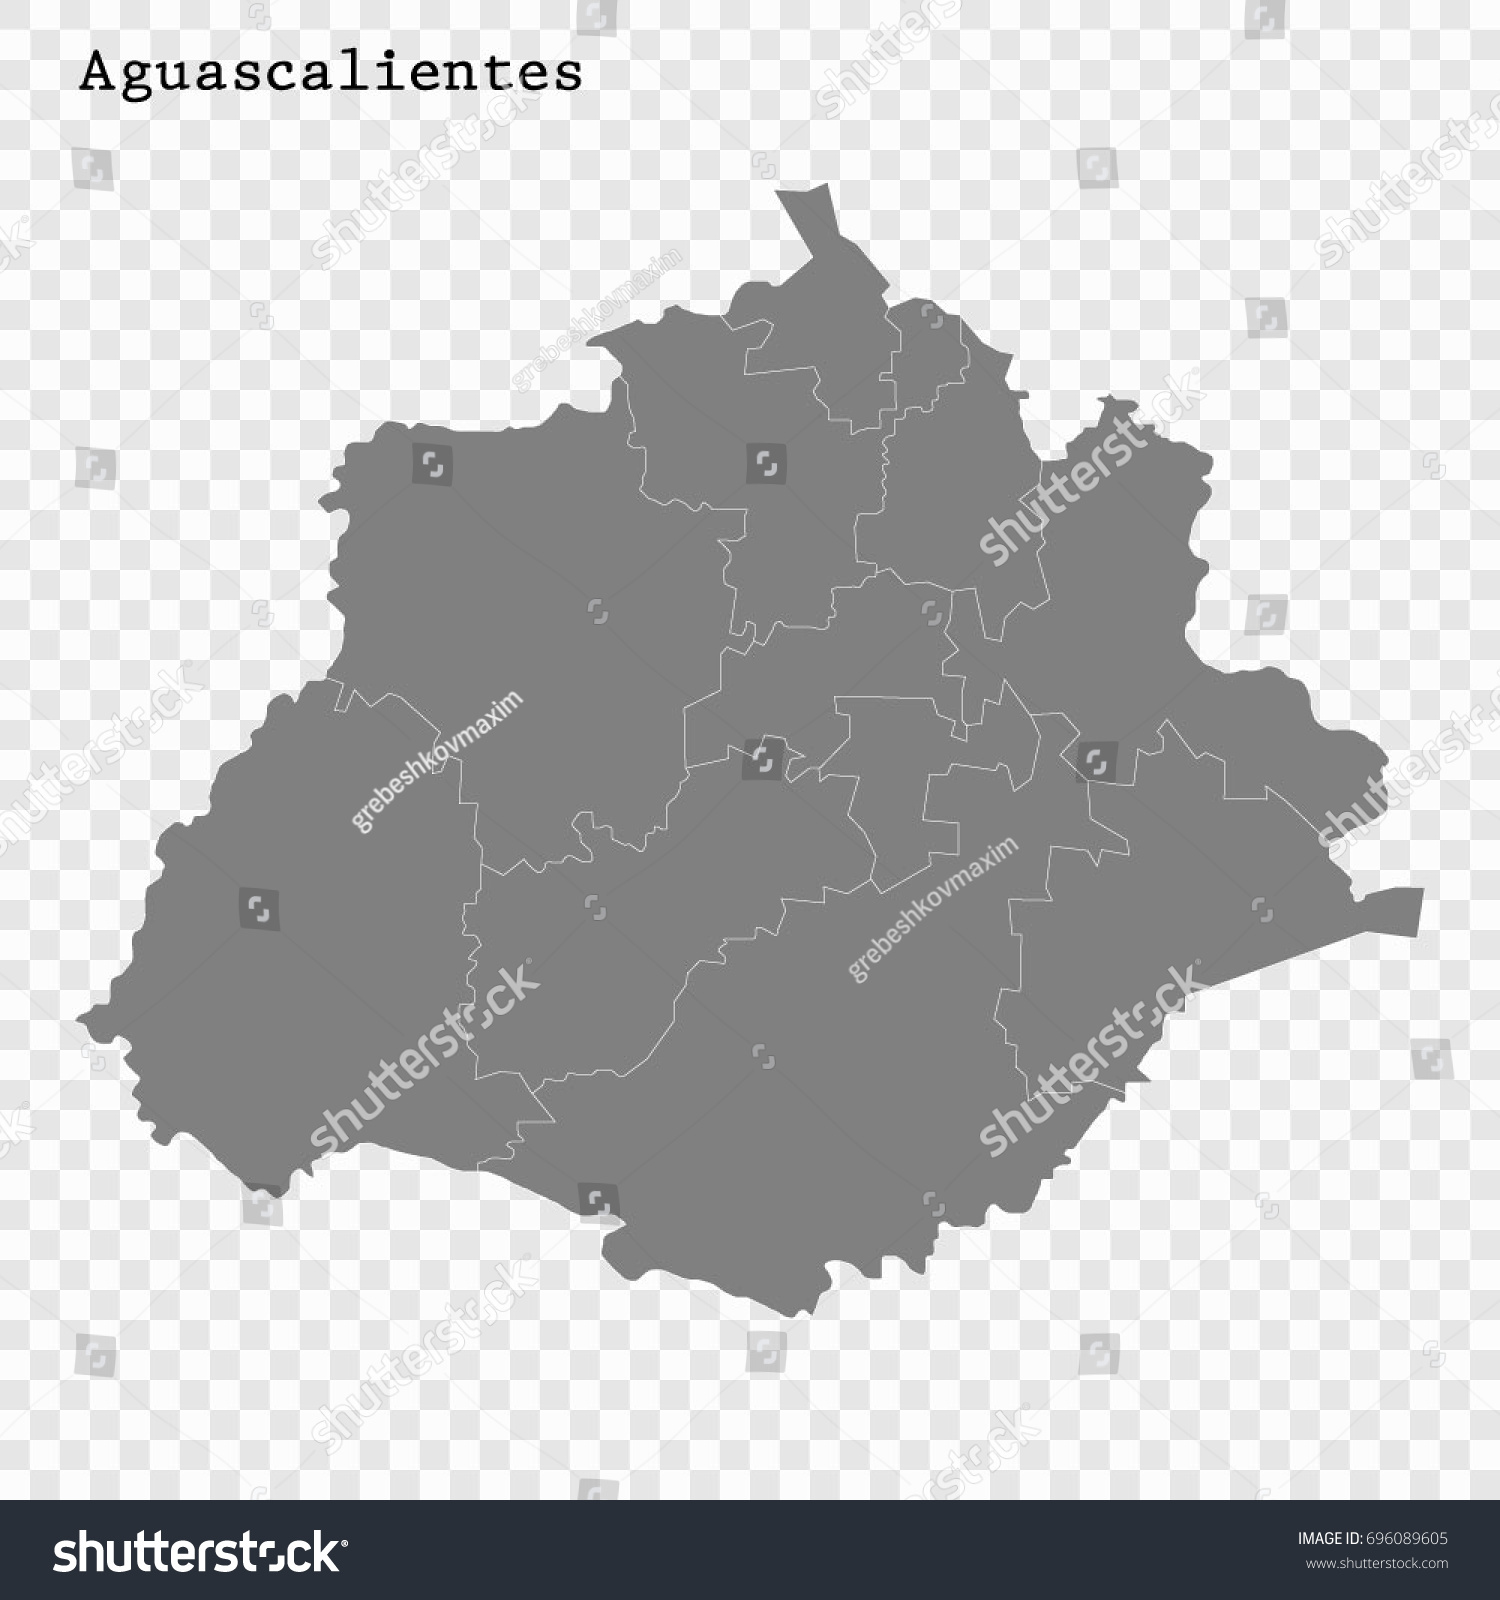 High Quality Map Aguascalientes State Mexico Stock Photo Photo